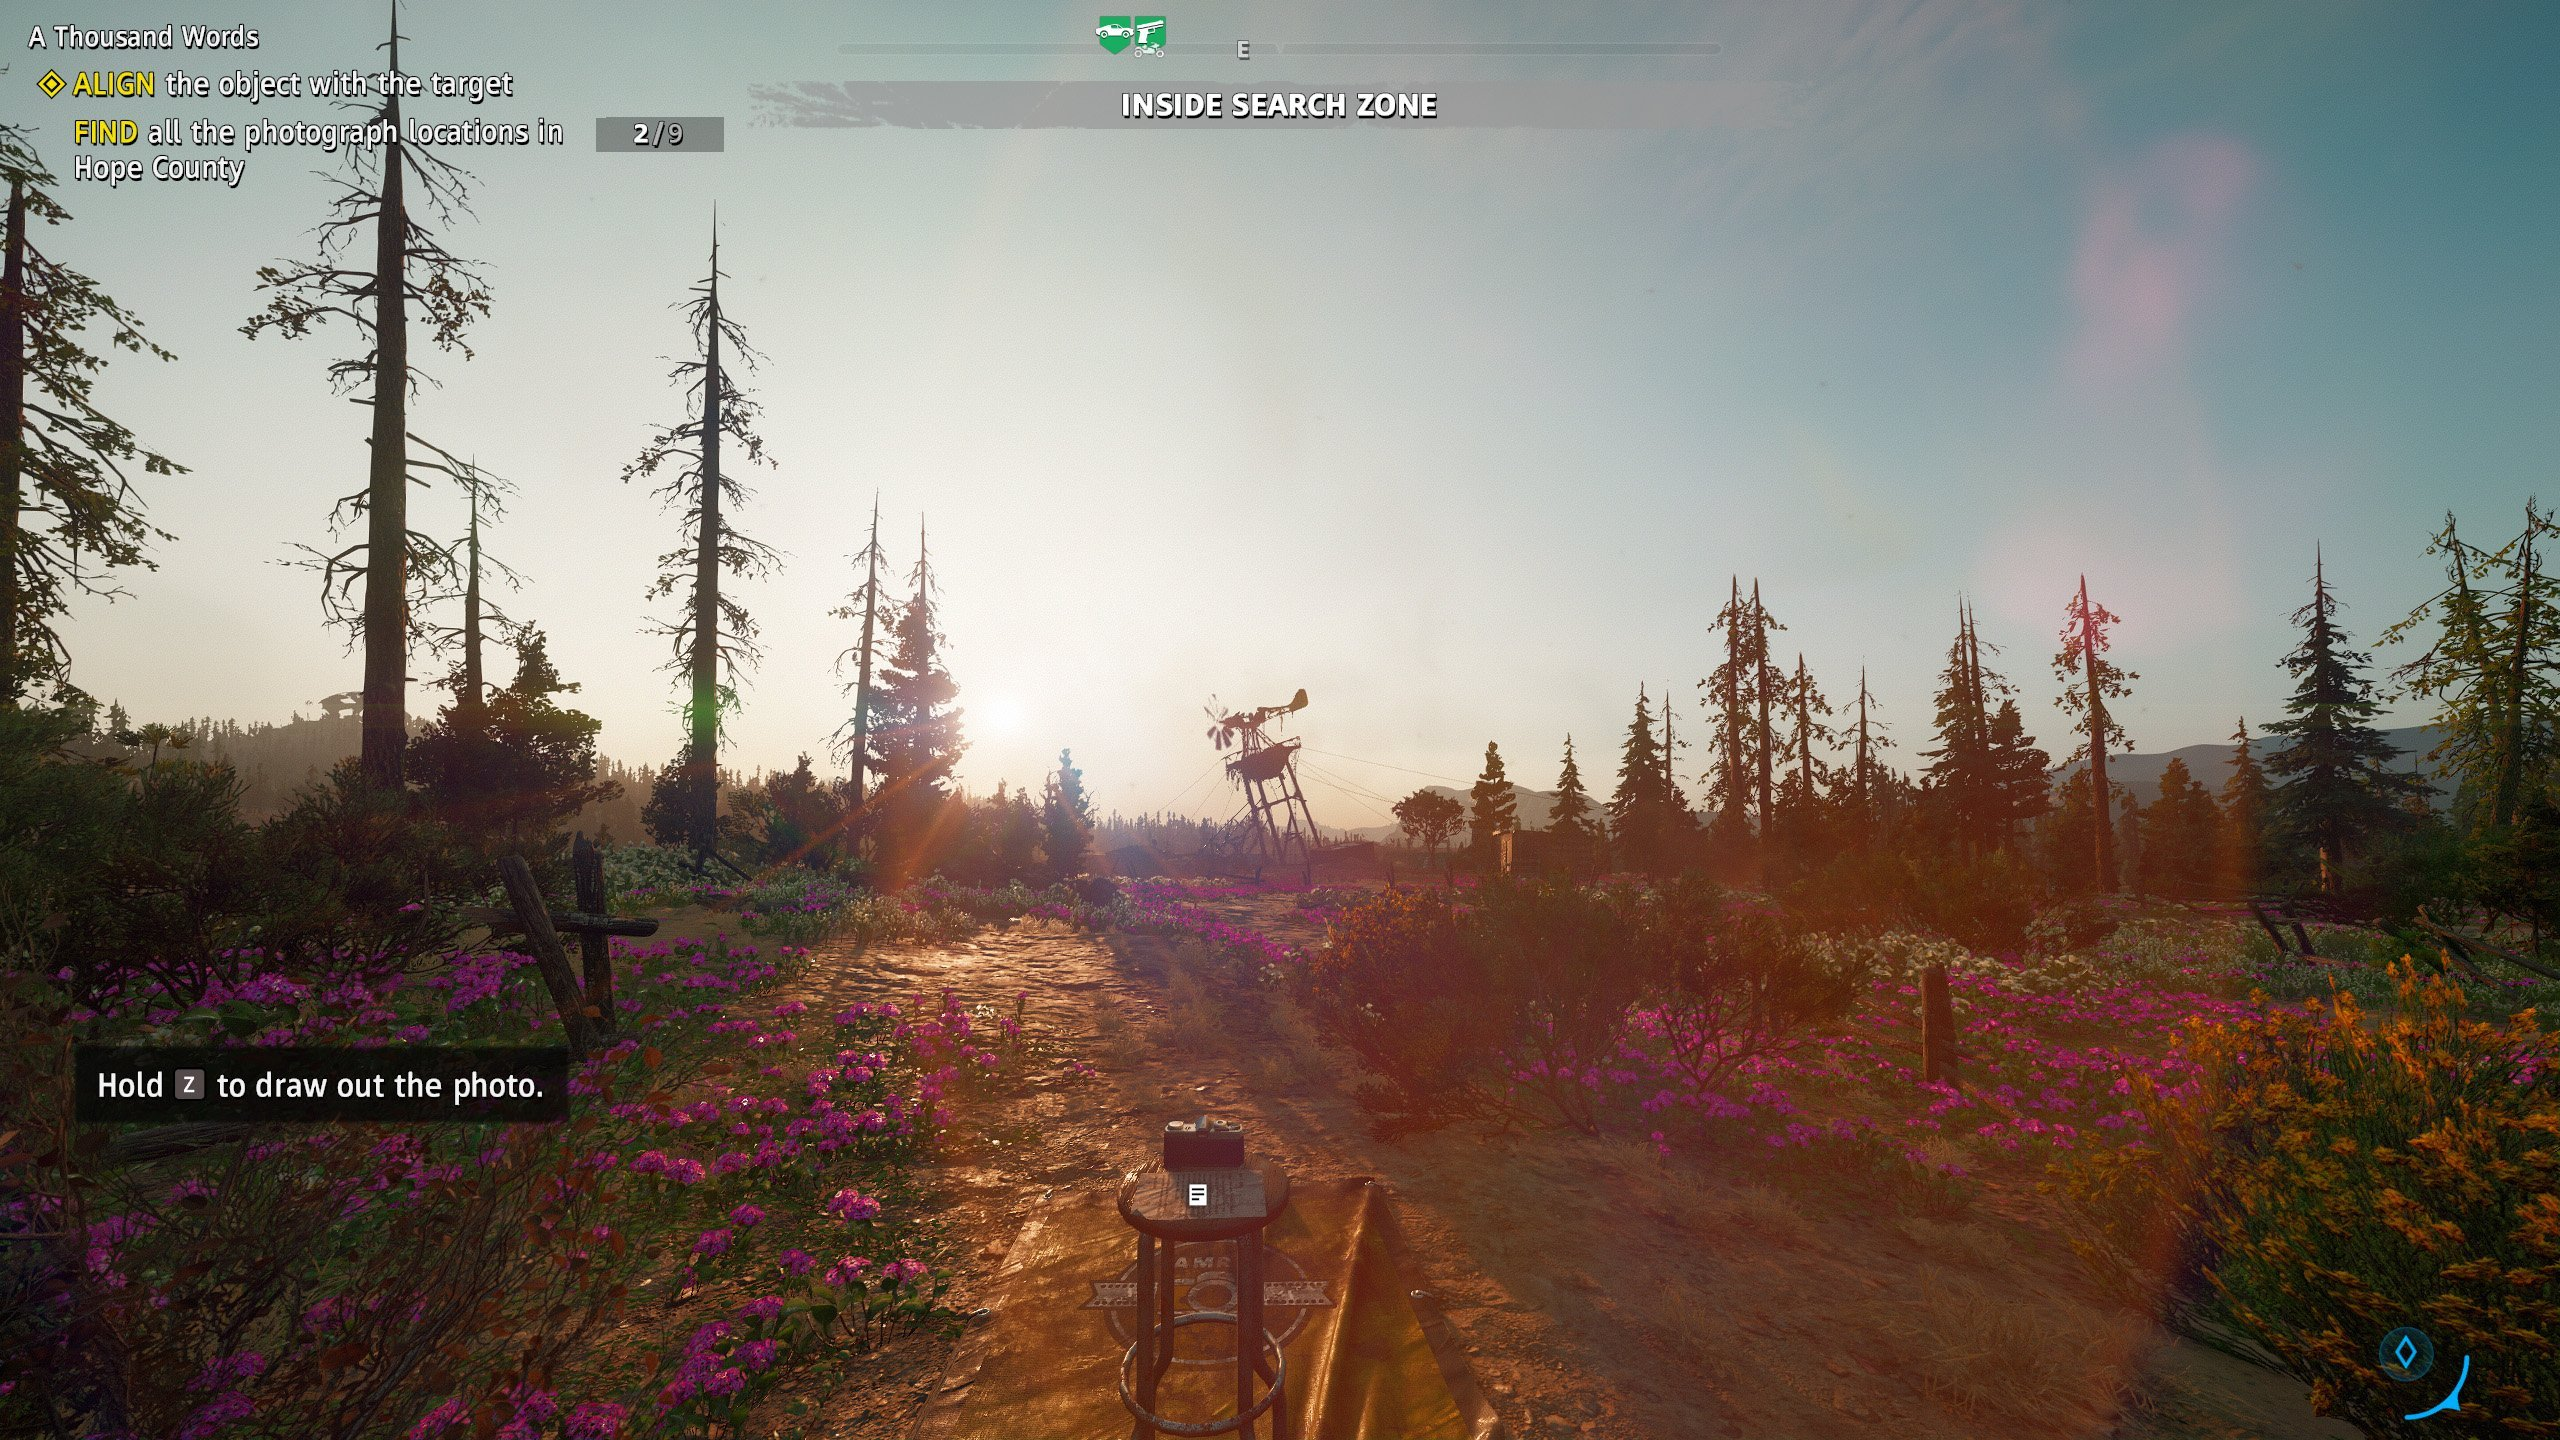 A Thousand Words photograph locations in Far Cry New Dawn